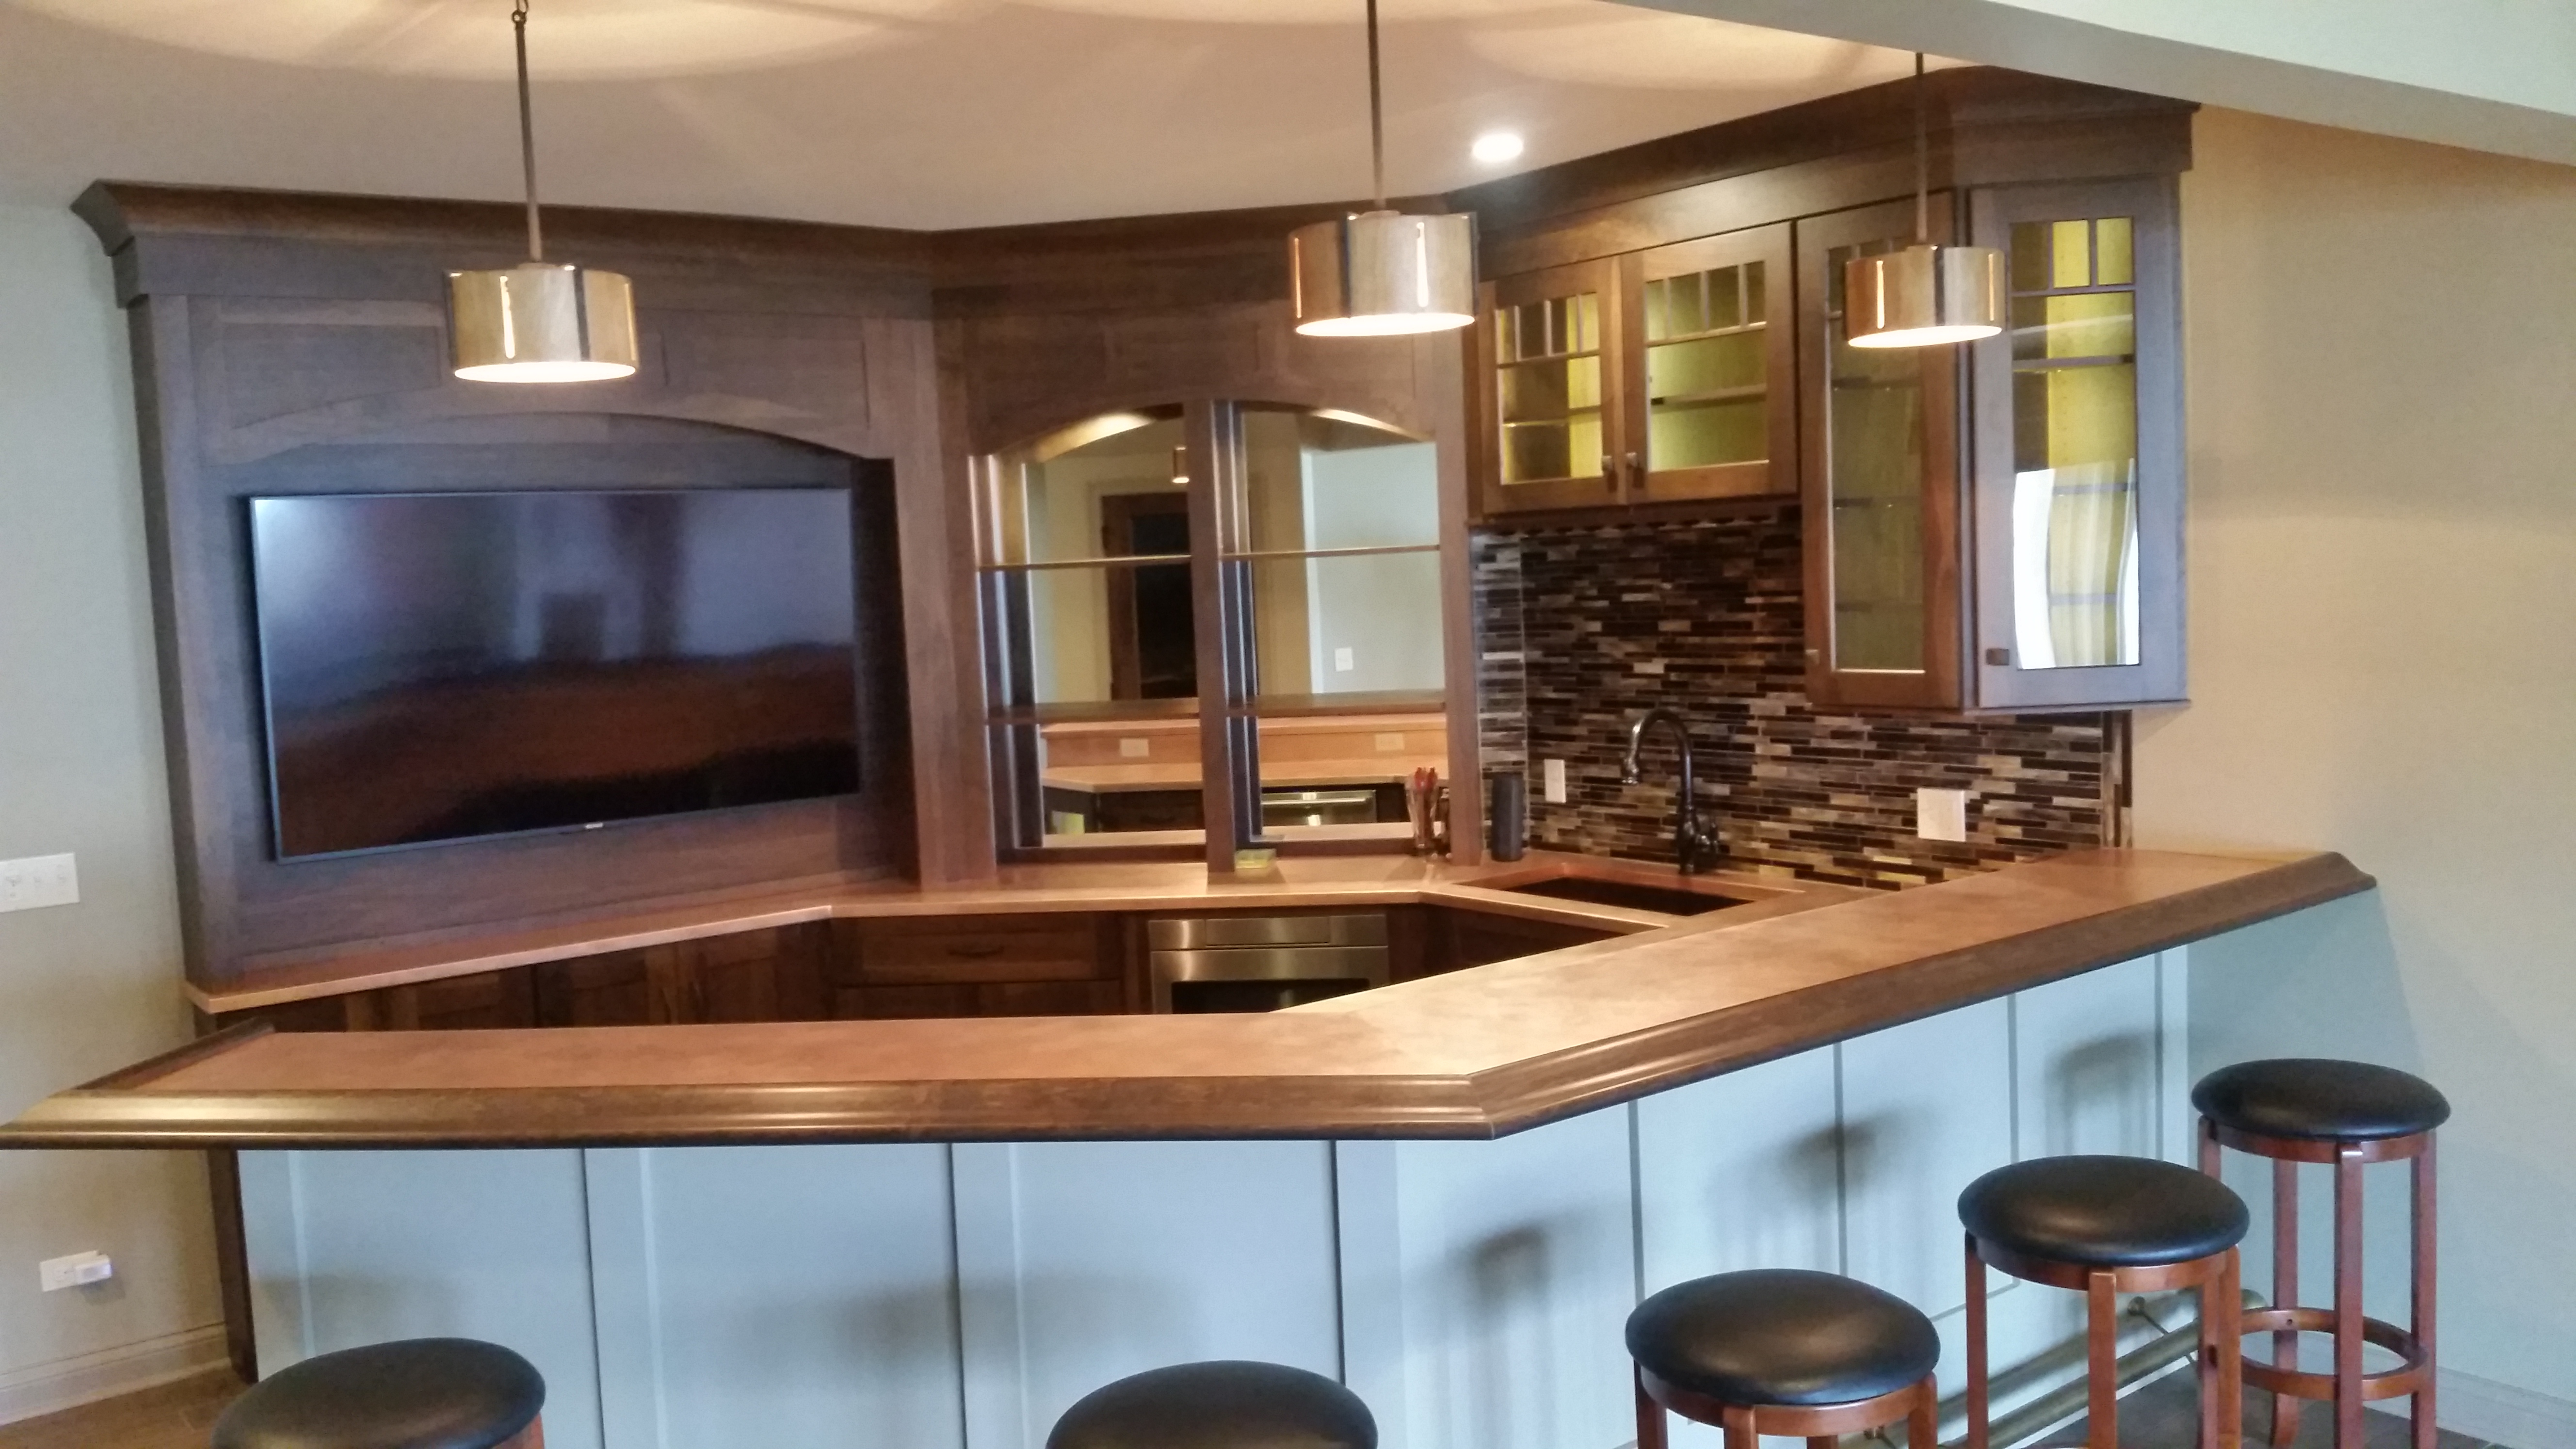 large island phoenix copper kitchen sinks countertops countertop washed acid paradise portfolio az gallery and view concrete